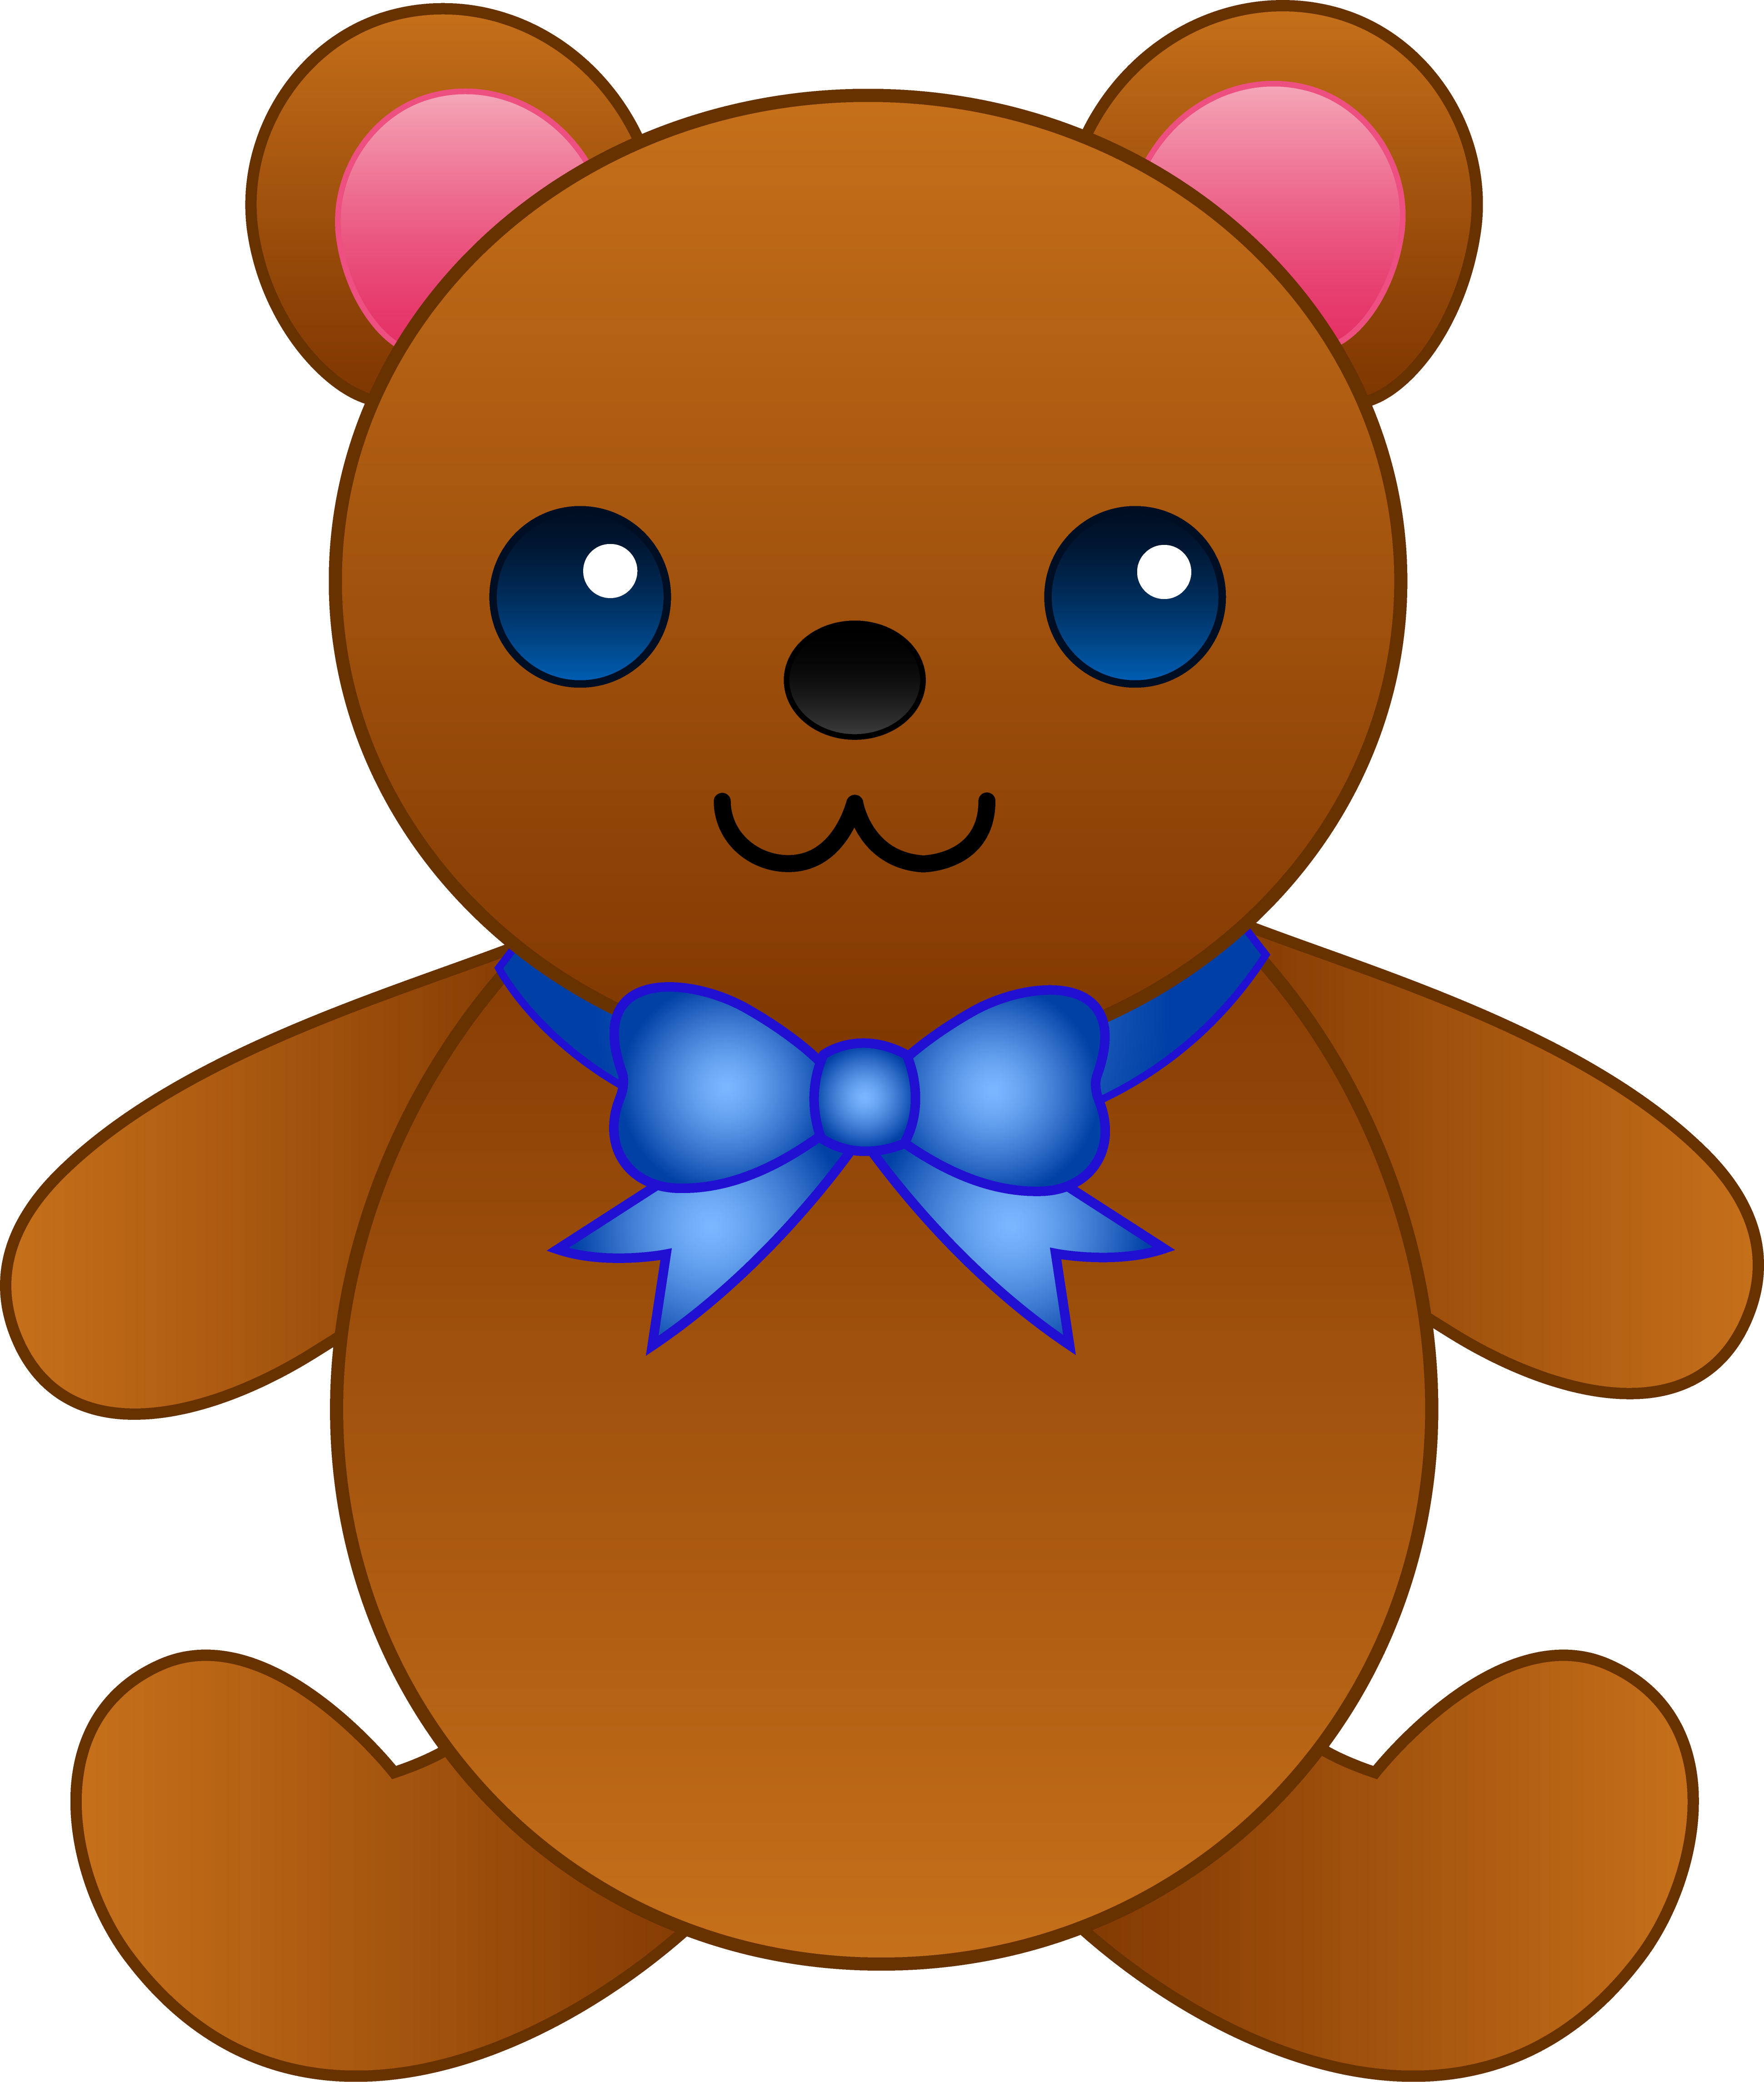 Pink Teddy Bear Clipart Free Clipart Ima-Pink teddy bear clipart free clipart images-12